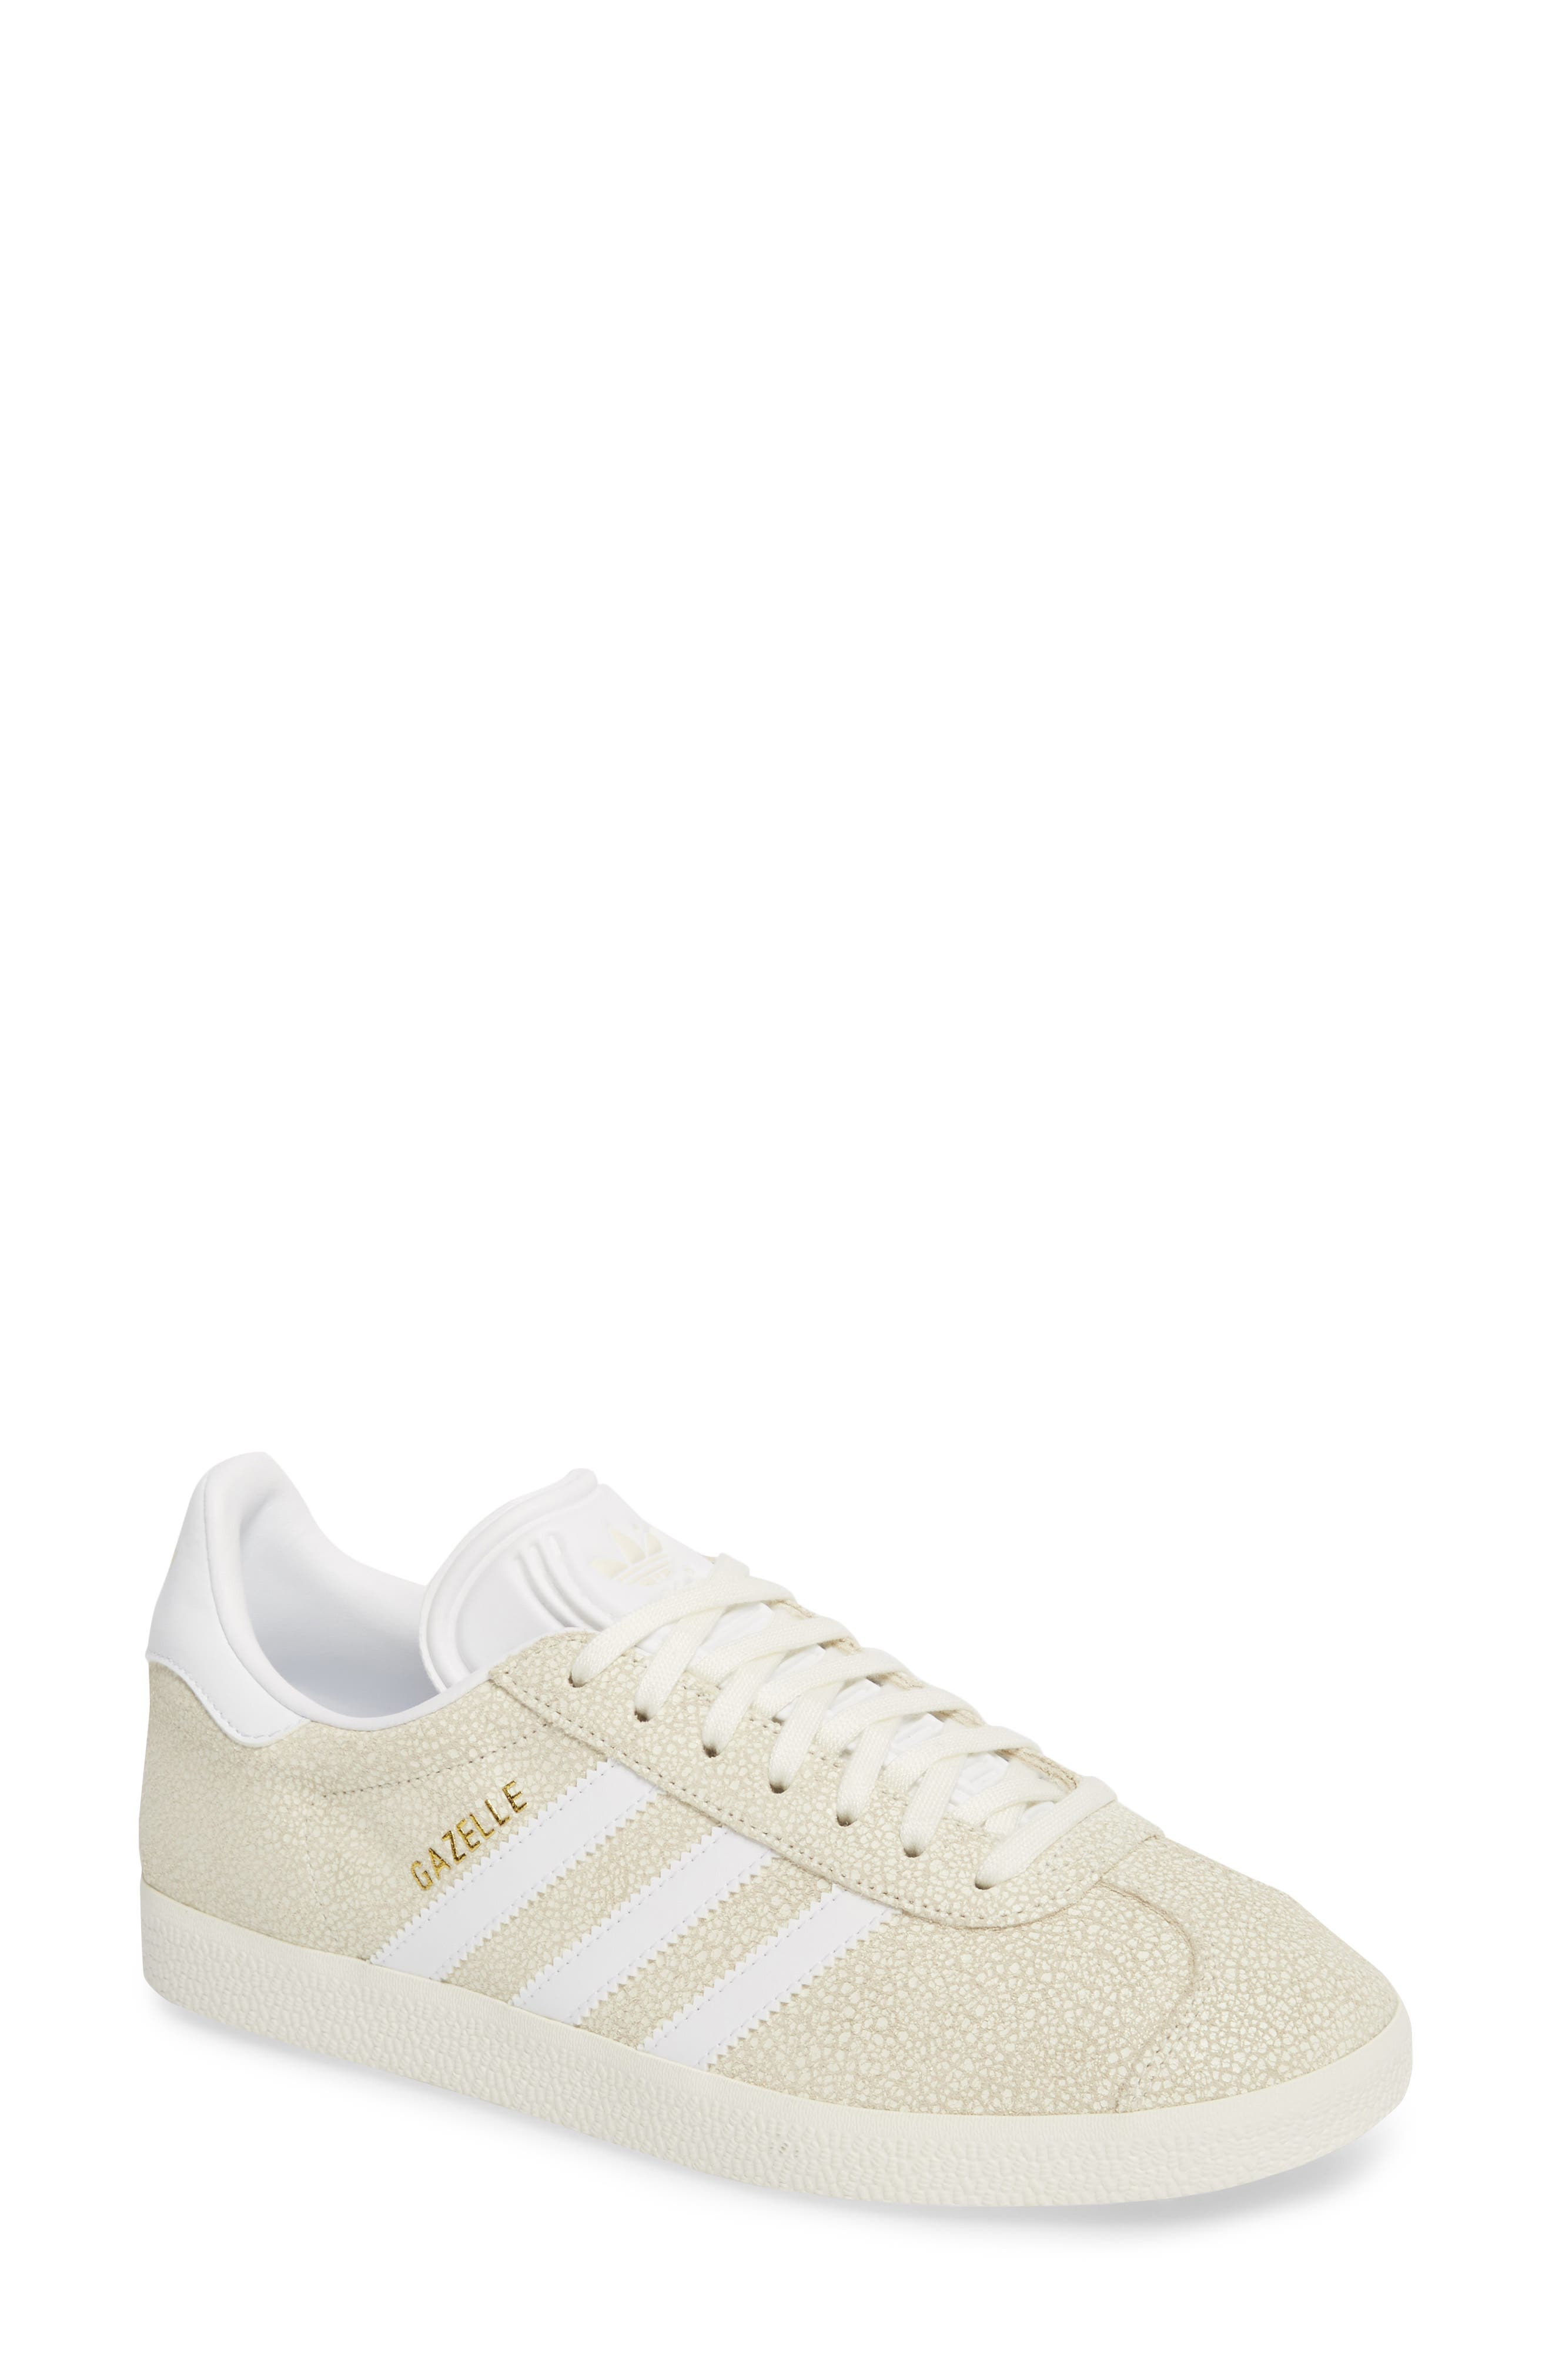 Gazelle Sneaker,                             Main thumbnail 1, color,                             Off White/ White/ Off White